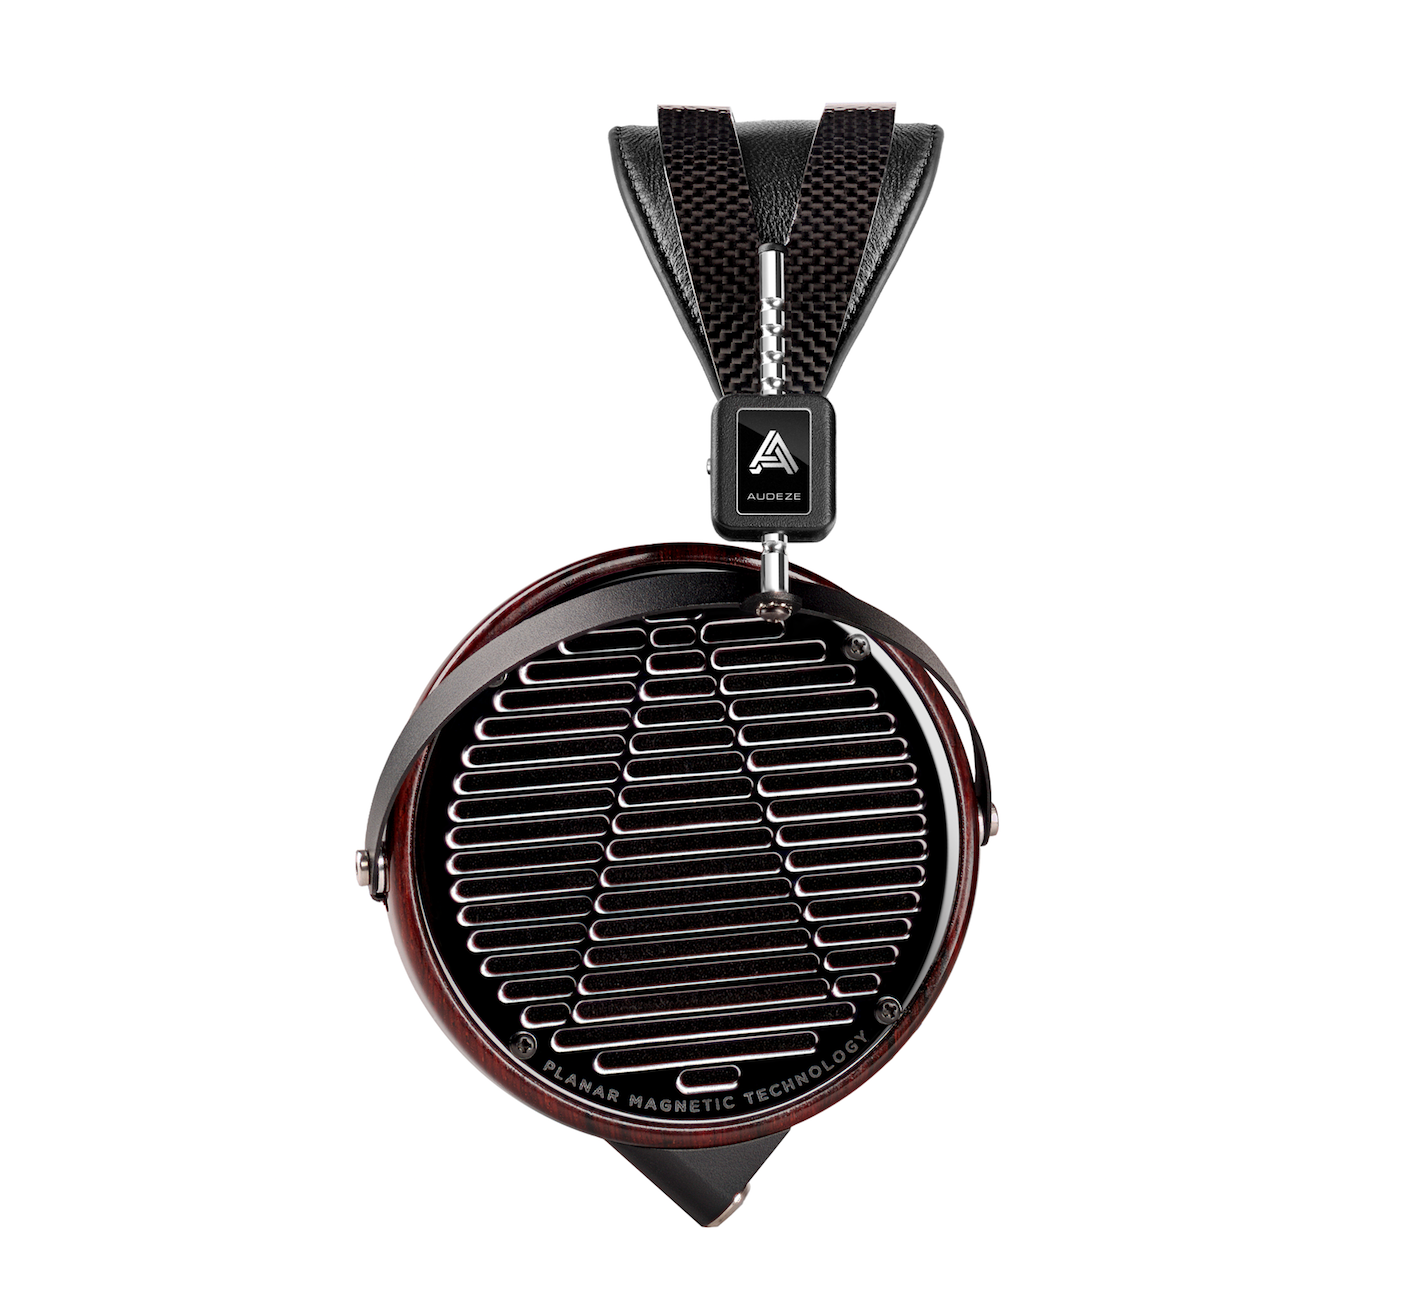 Audeze LCD-4 headphones with a carbon, wood and chrome finish.